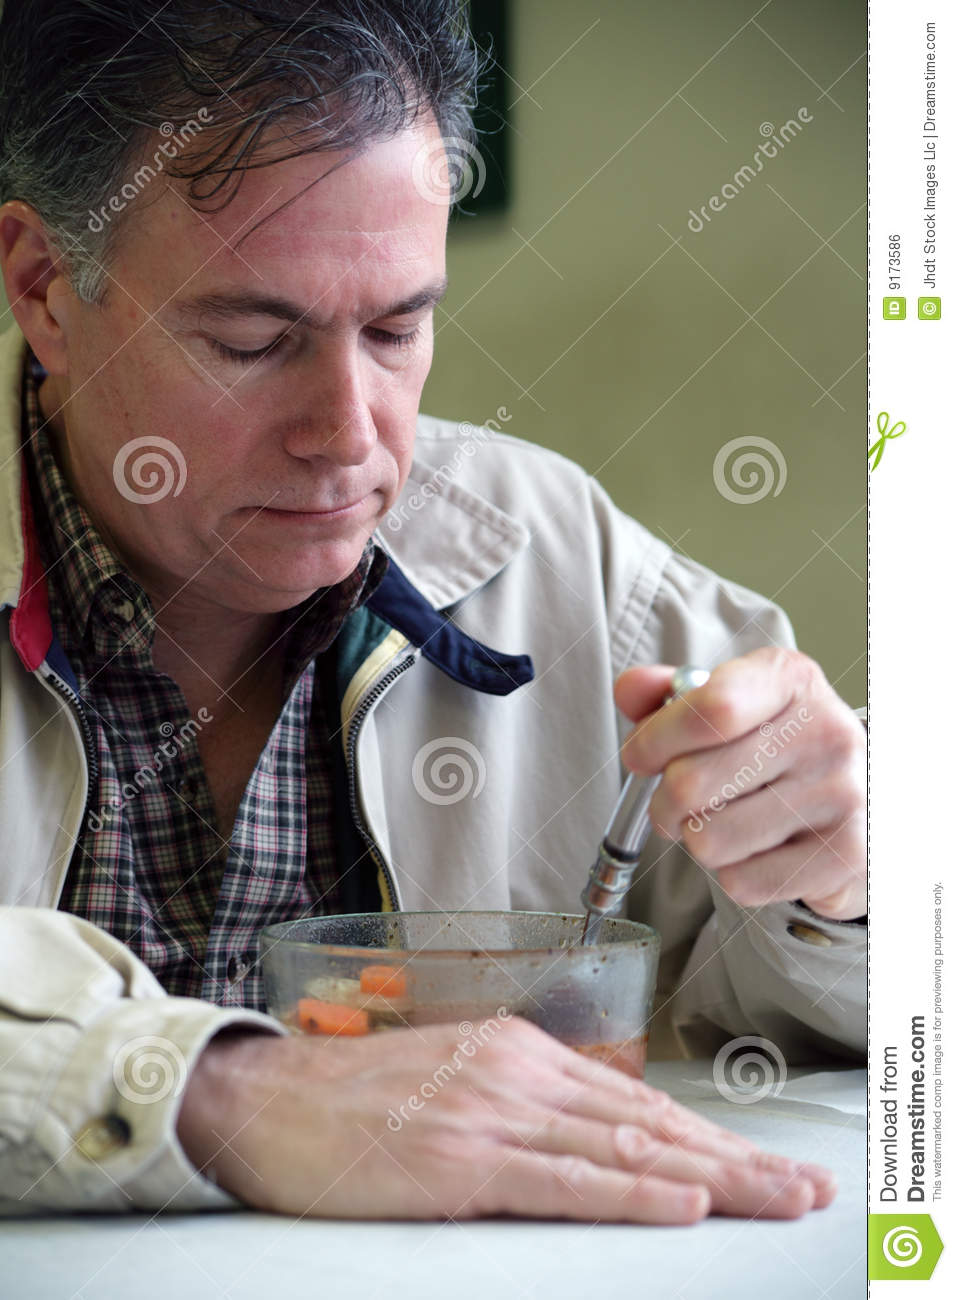 Eating Soup Stock Photo. Image Of Ordinary, Bowl, Health